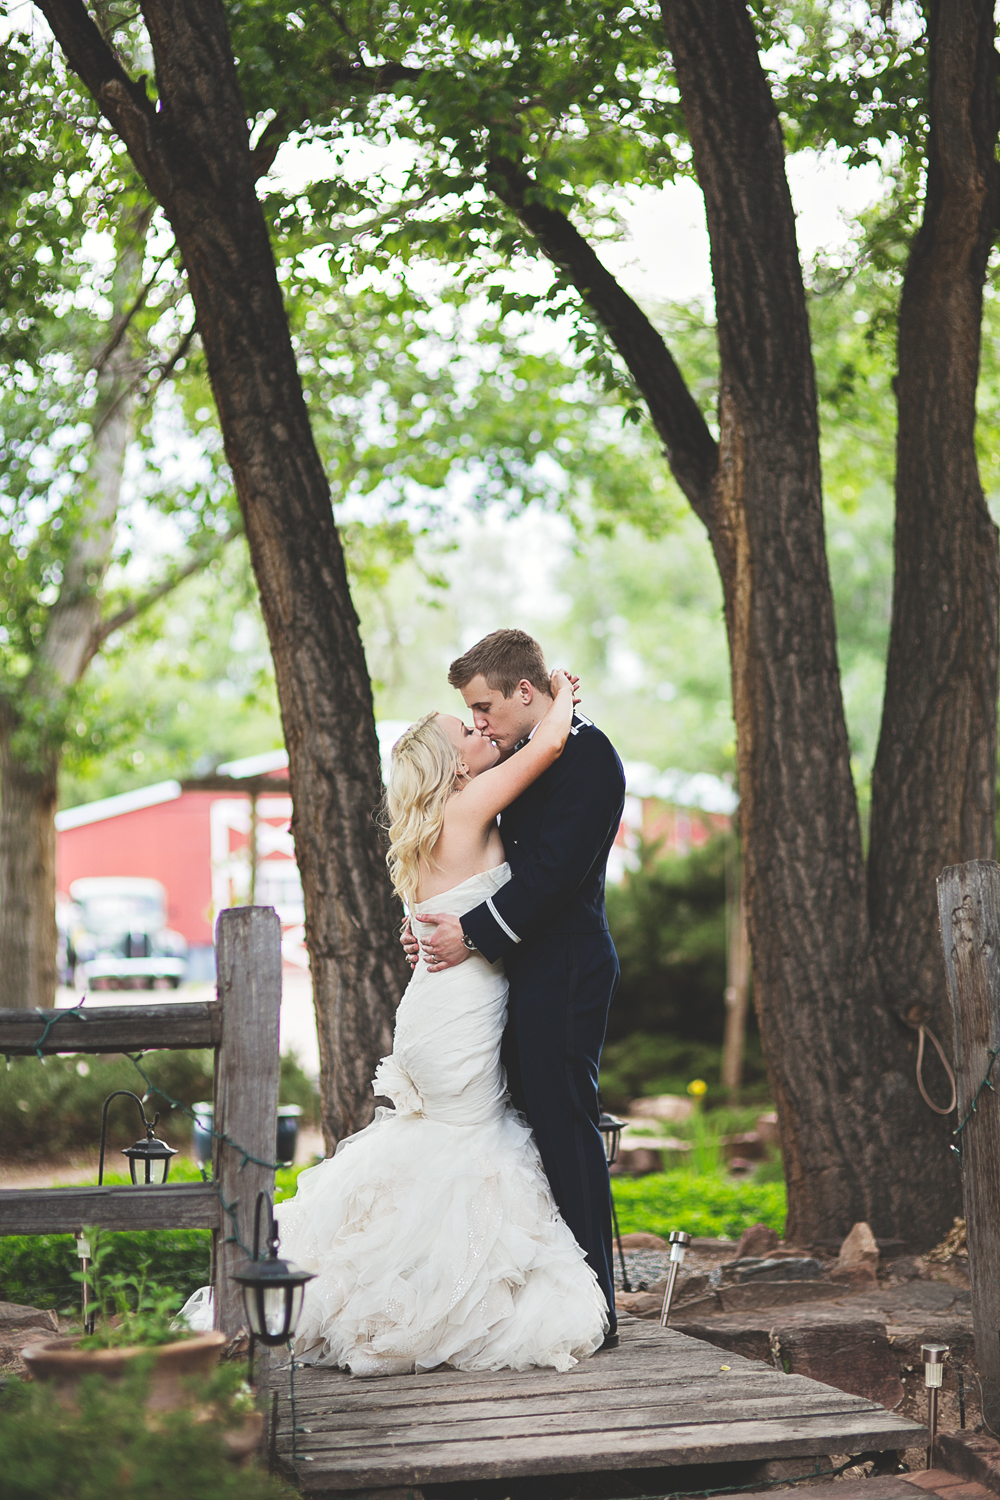 Old Town Farm Albuquerque New Mexico Wedding by Liz Anne Photography_41